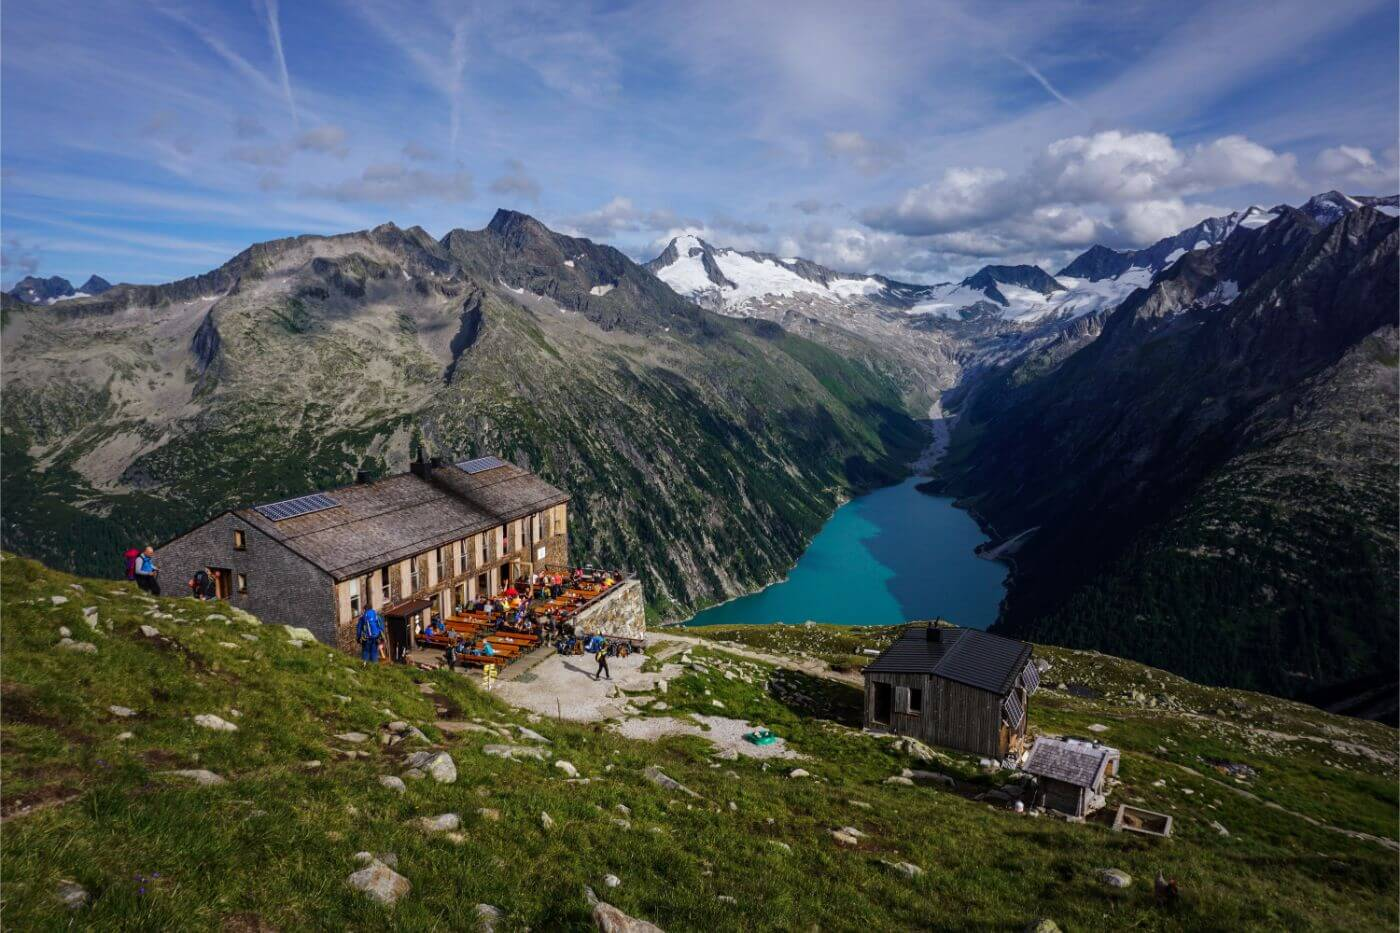 Olperer mountain hut / Olpererhütte Day Hike - Things to Do in Mayrhofen in Summer